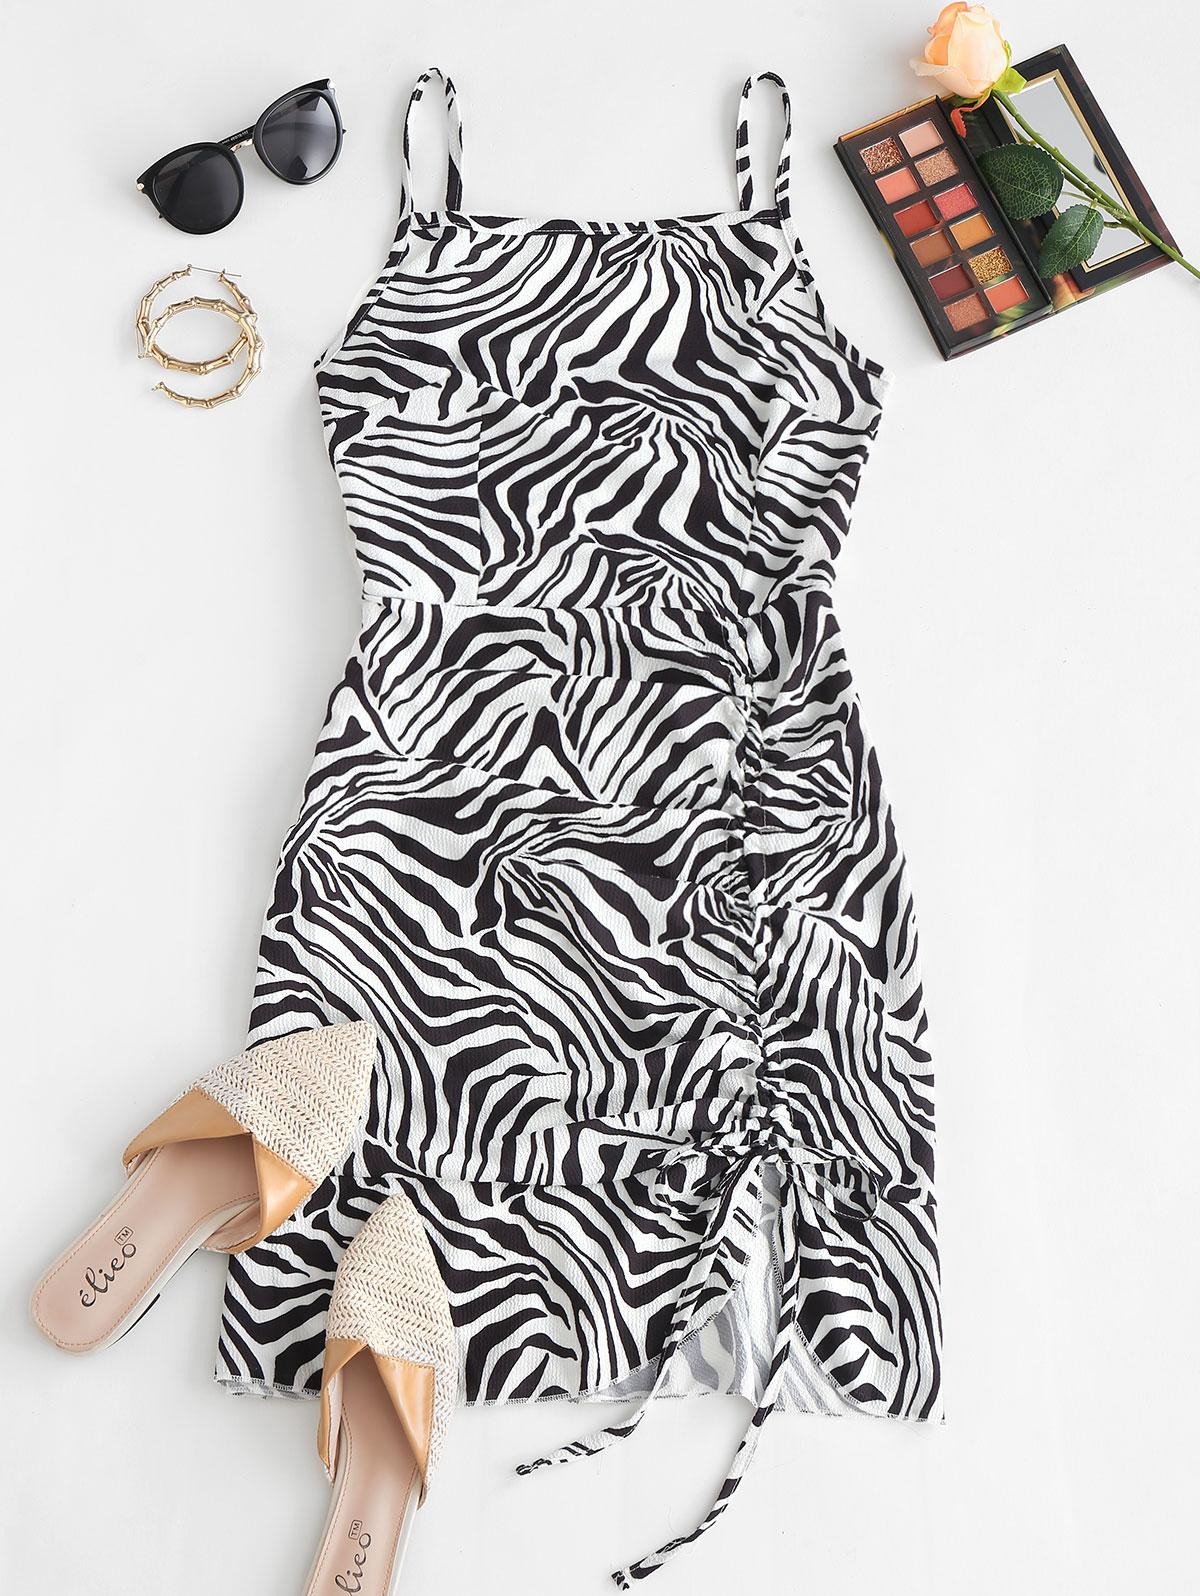 Cami Asymmetrical Flame Zebra Tie Dye Cinched Dress